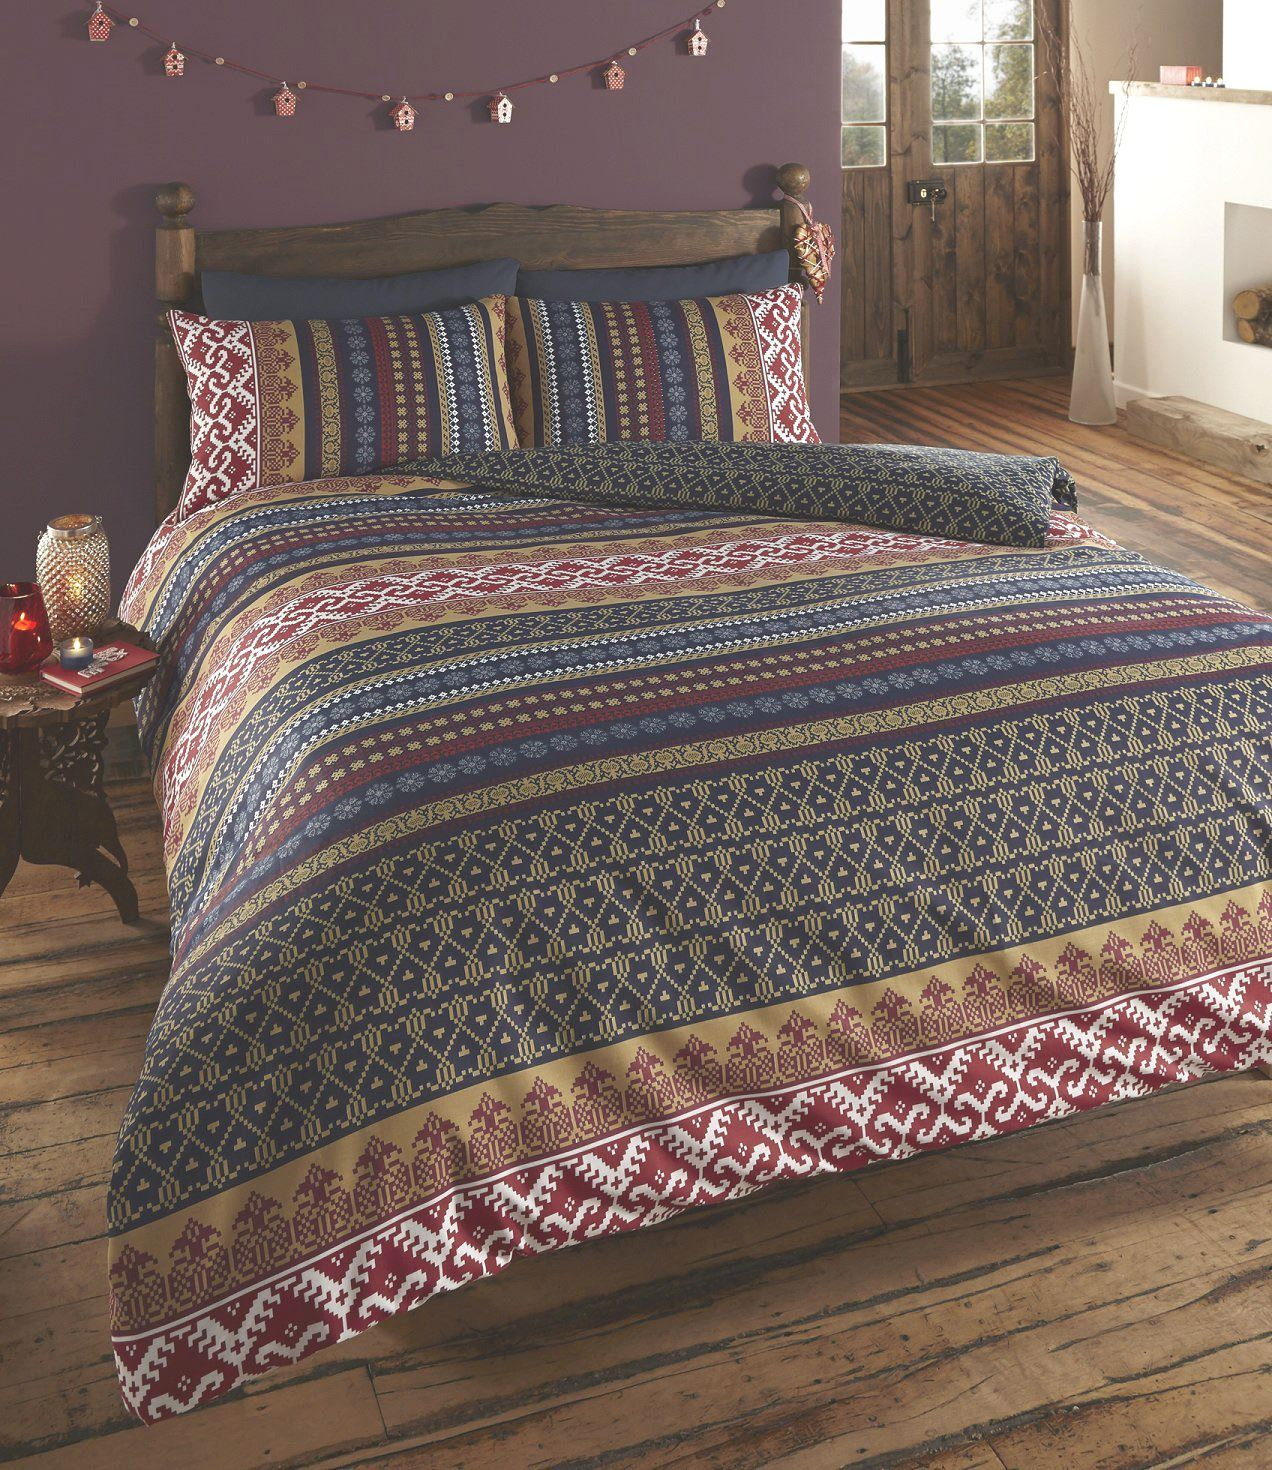 indian inspired quilt duvet cover pillowcase bedding bed sets 3 sizes ebay. Black Bedroom Furniture Sets. Home Design Ideas